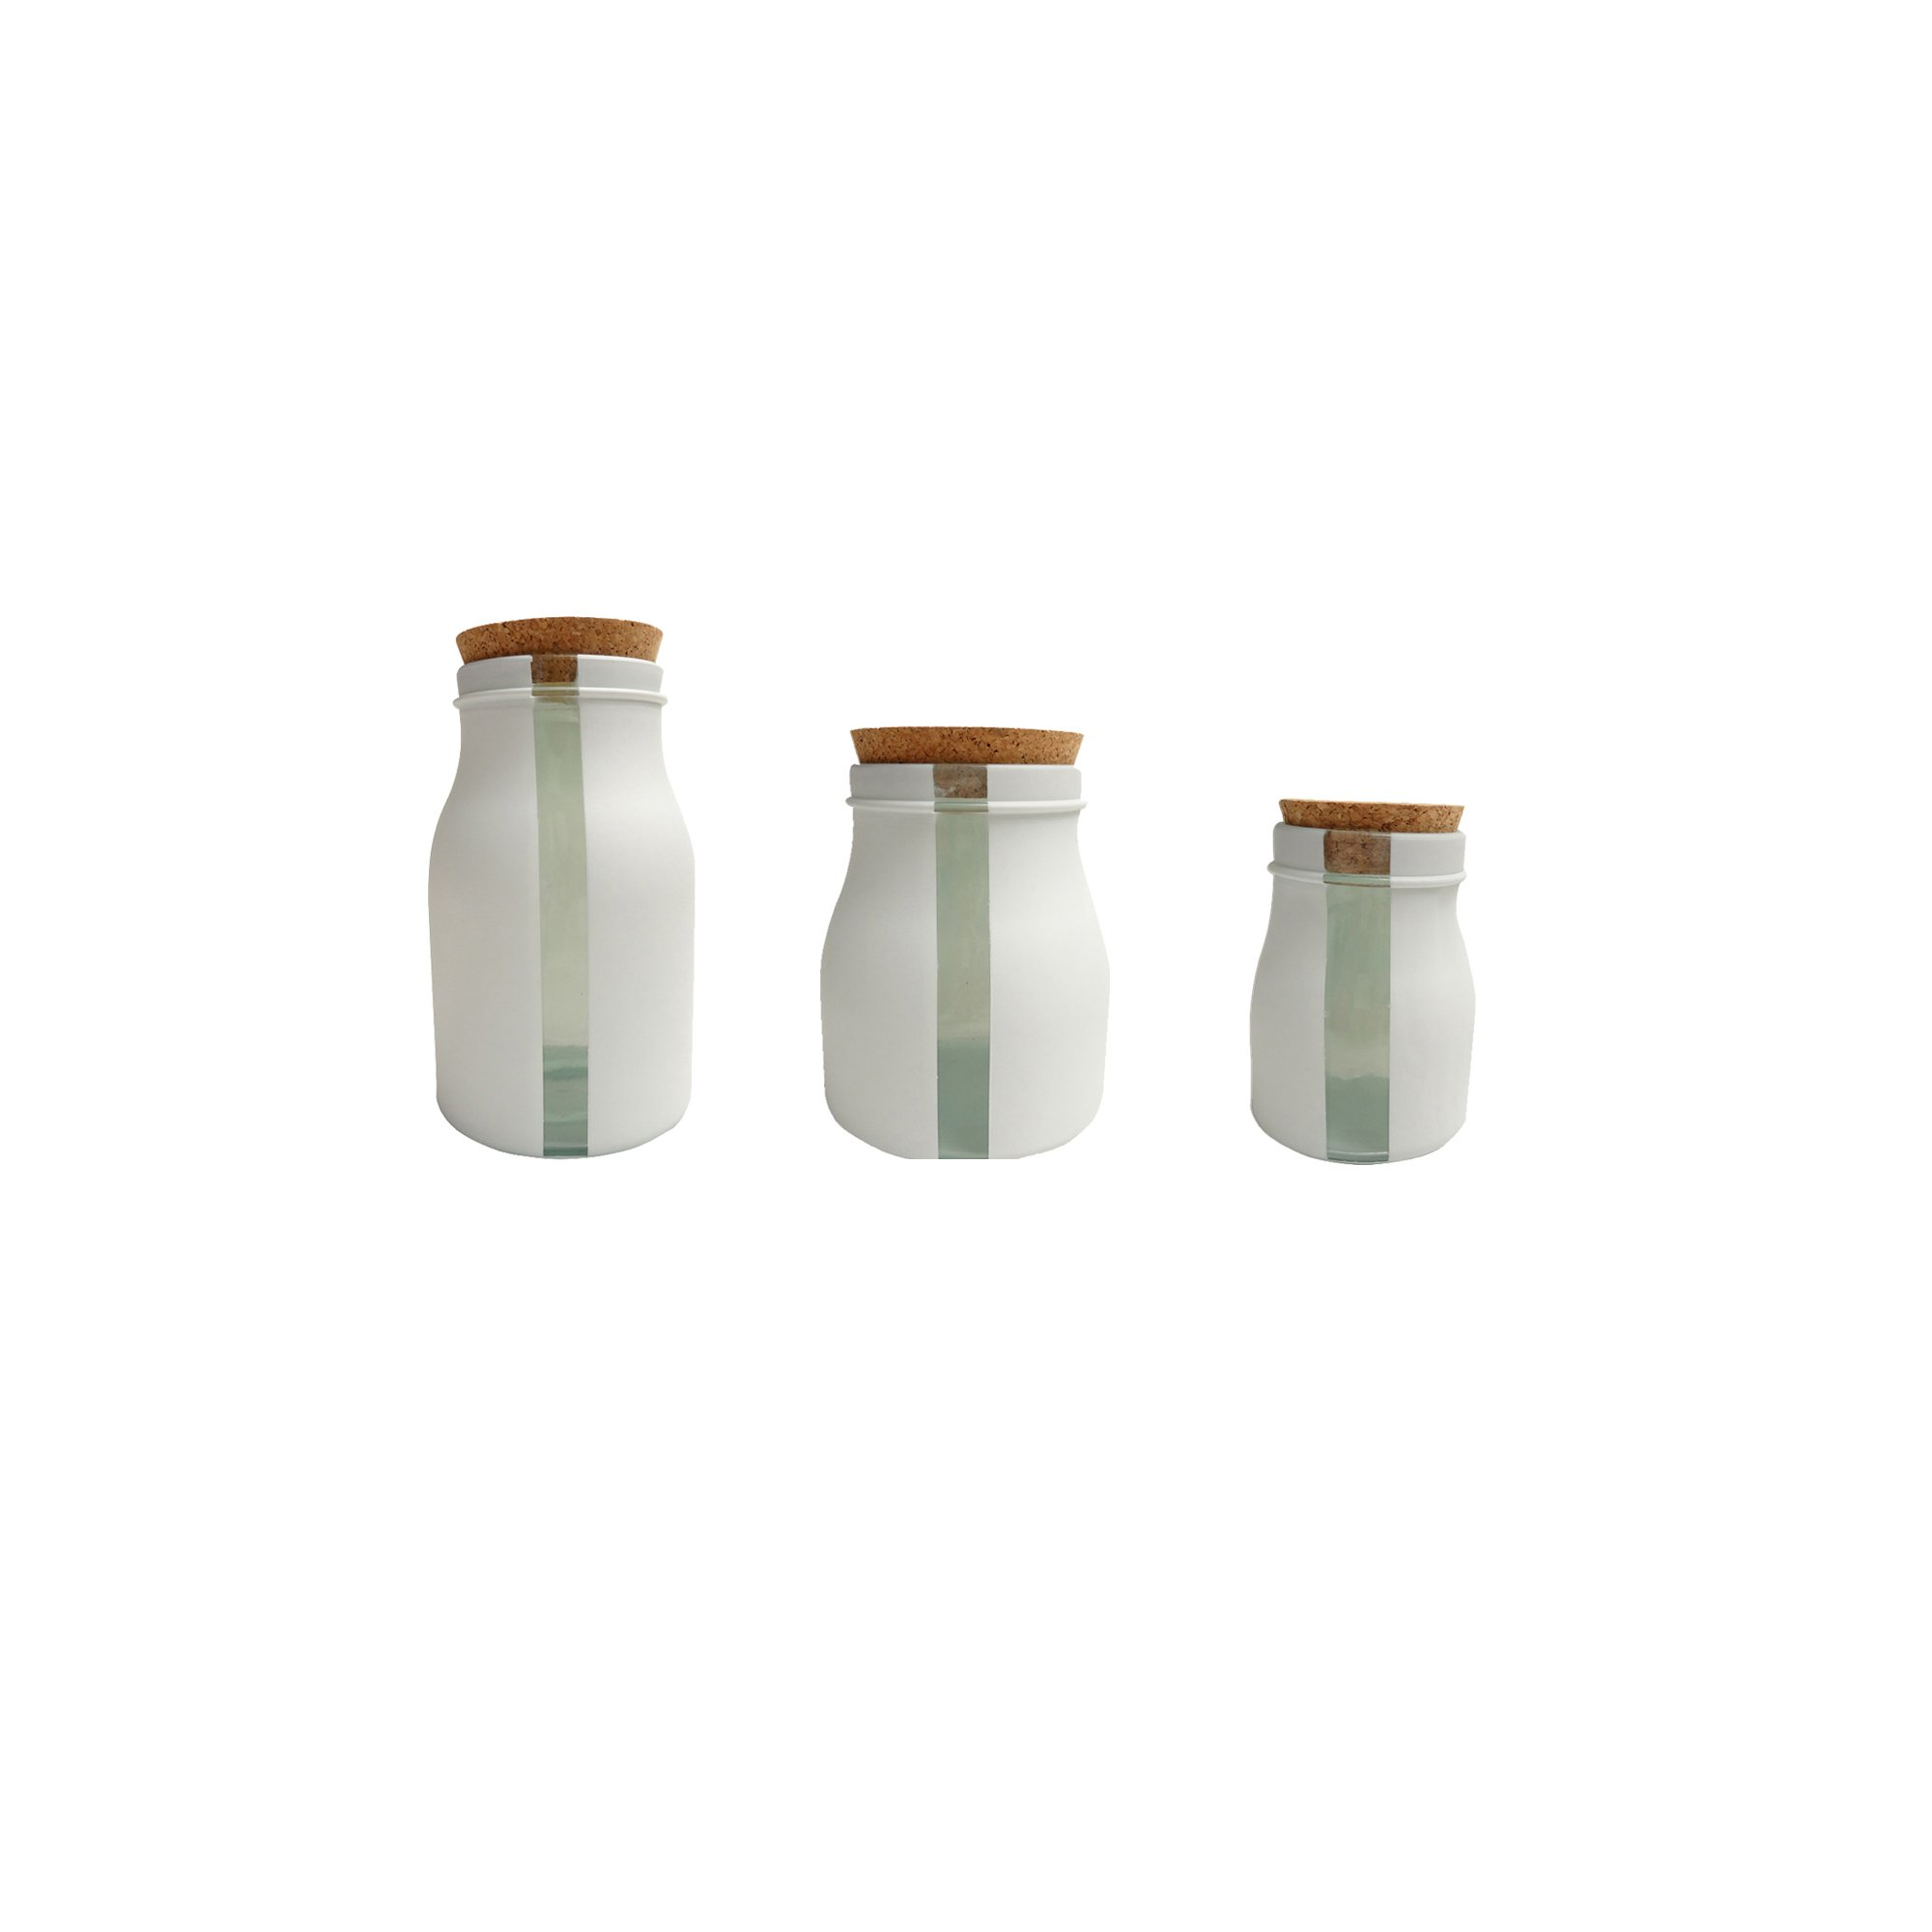 French Home Set of 3, 68-ounce,40-ounce,8.5-ounce White Vertical Window Jars